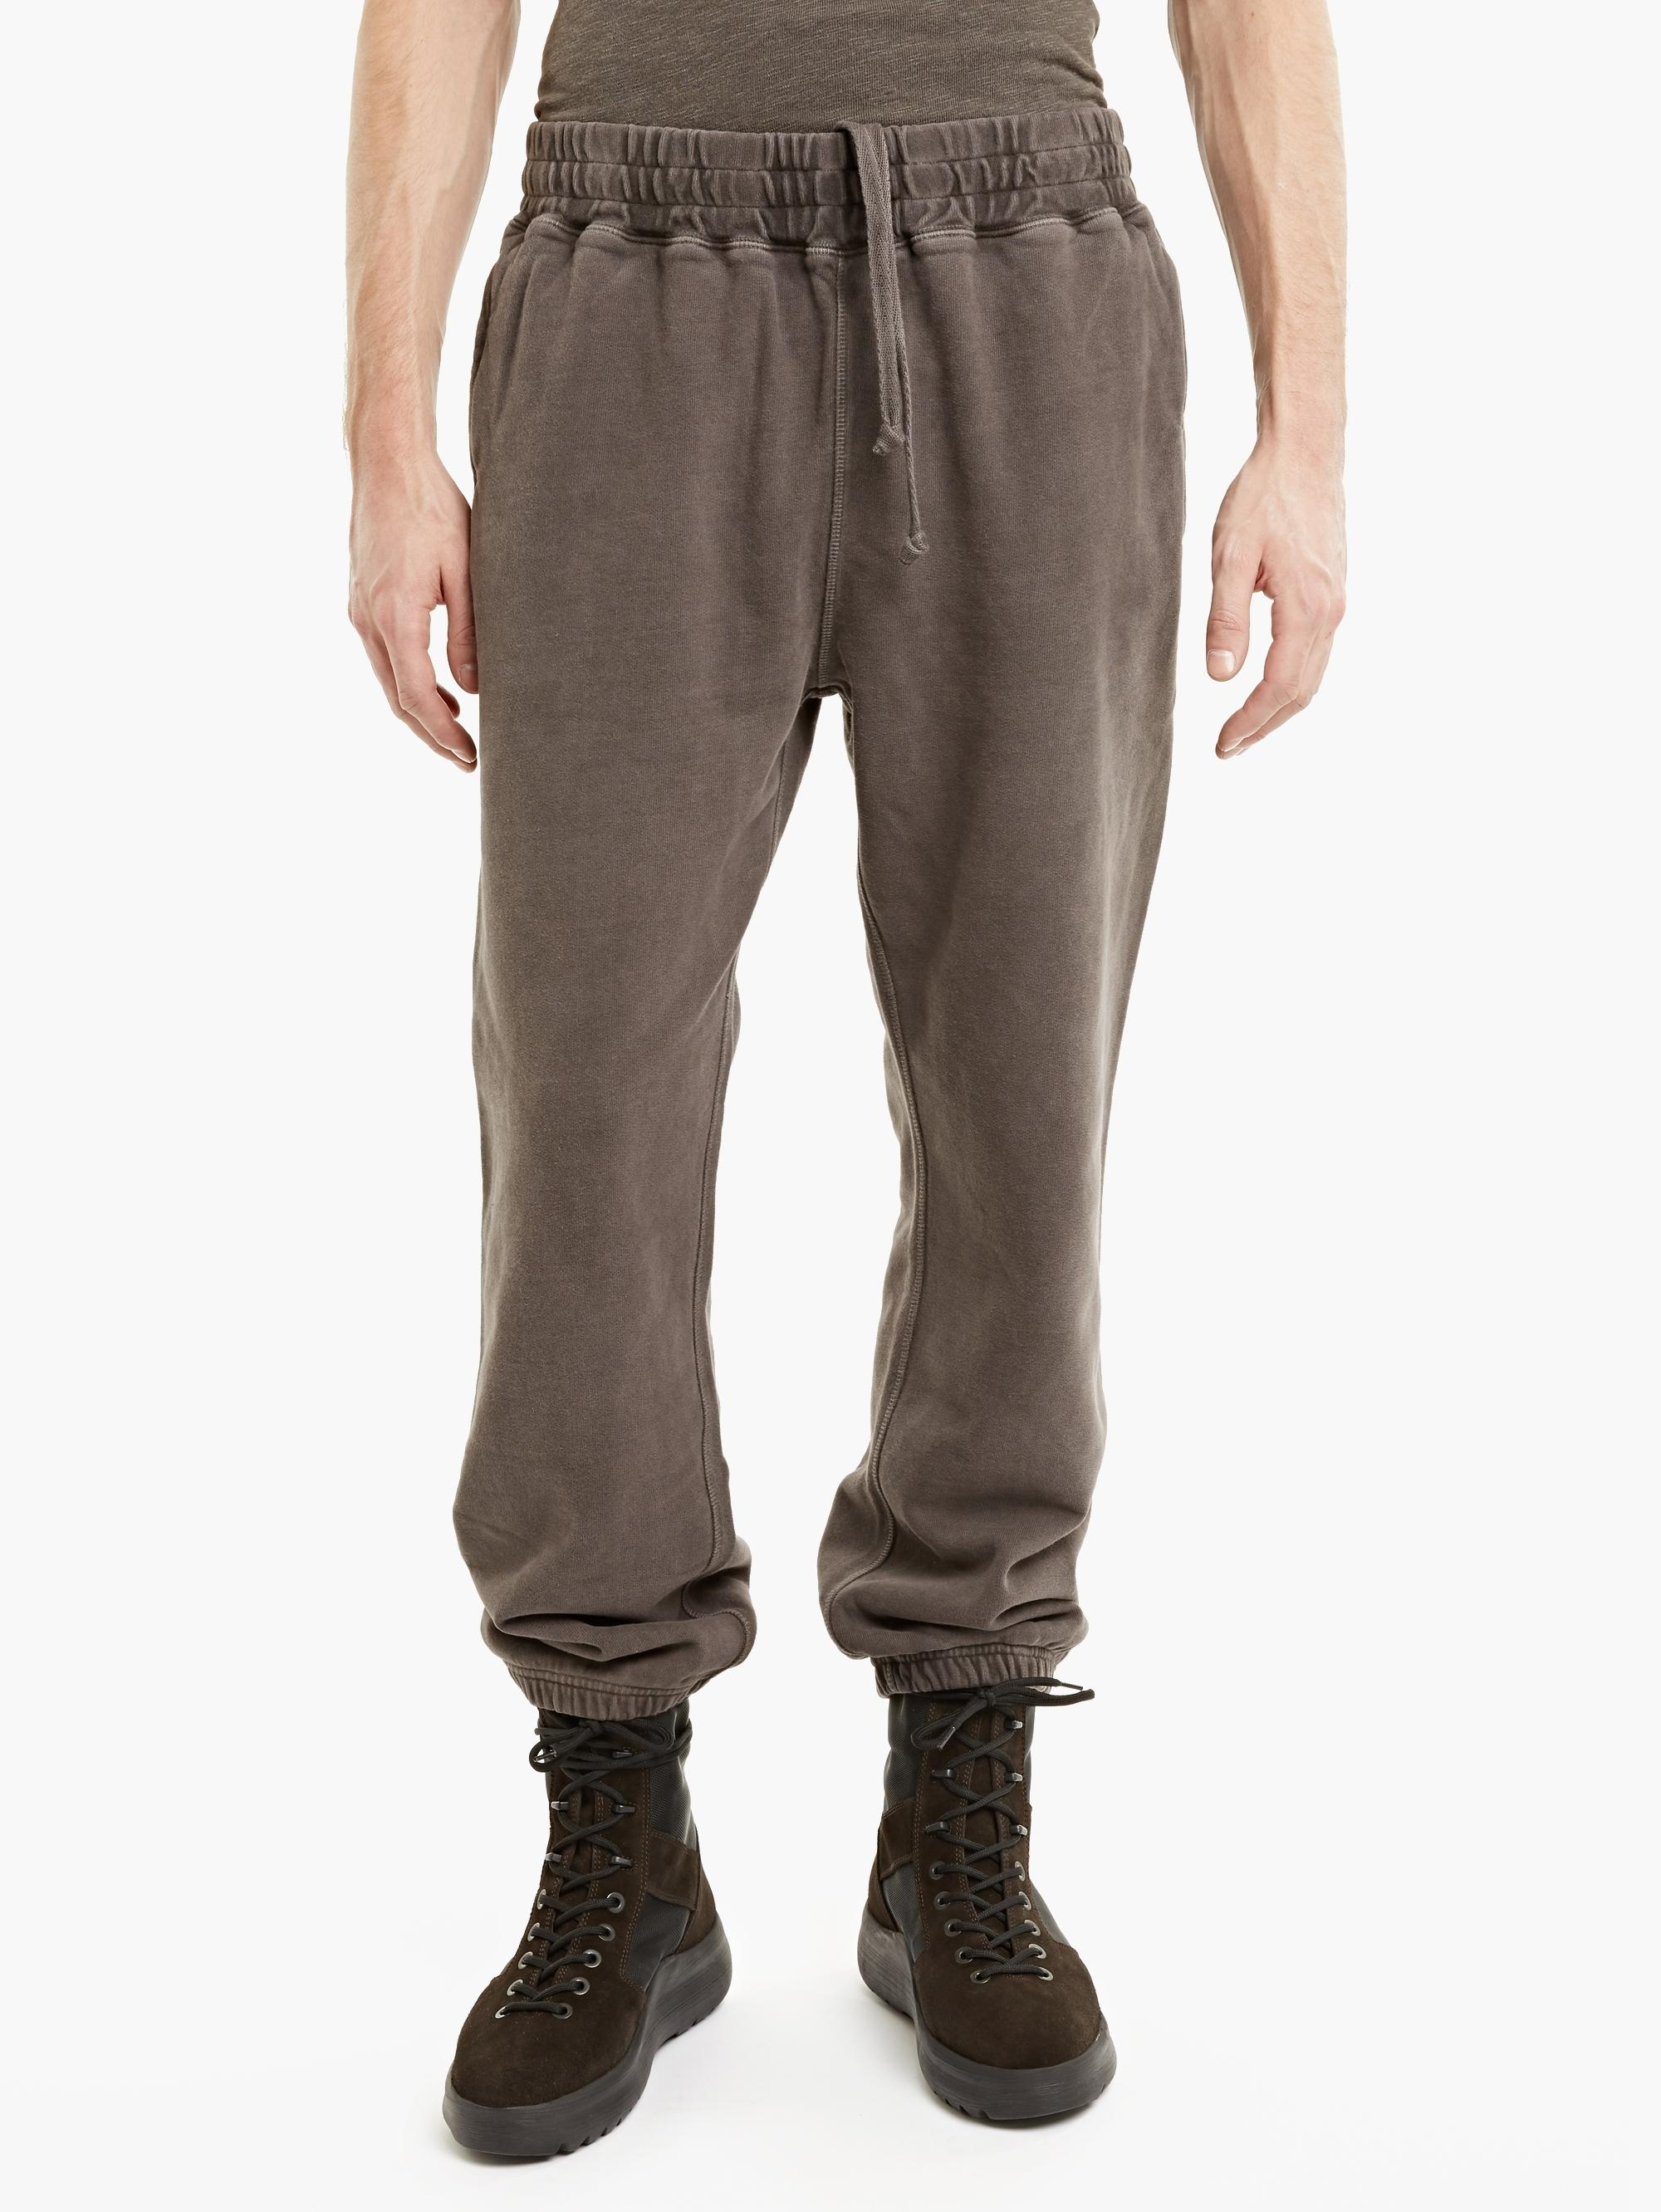 Yeezy Grey Washed Cotton Sweatpants In Gray For Men Lyst